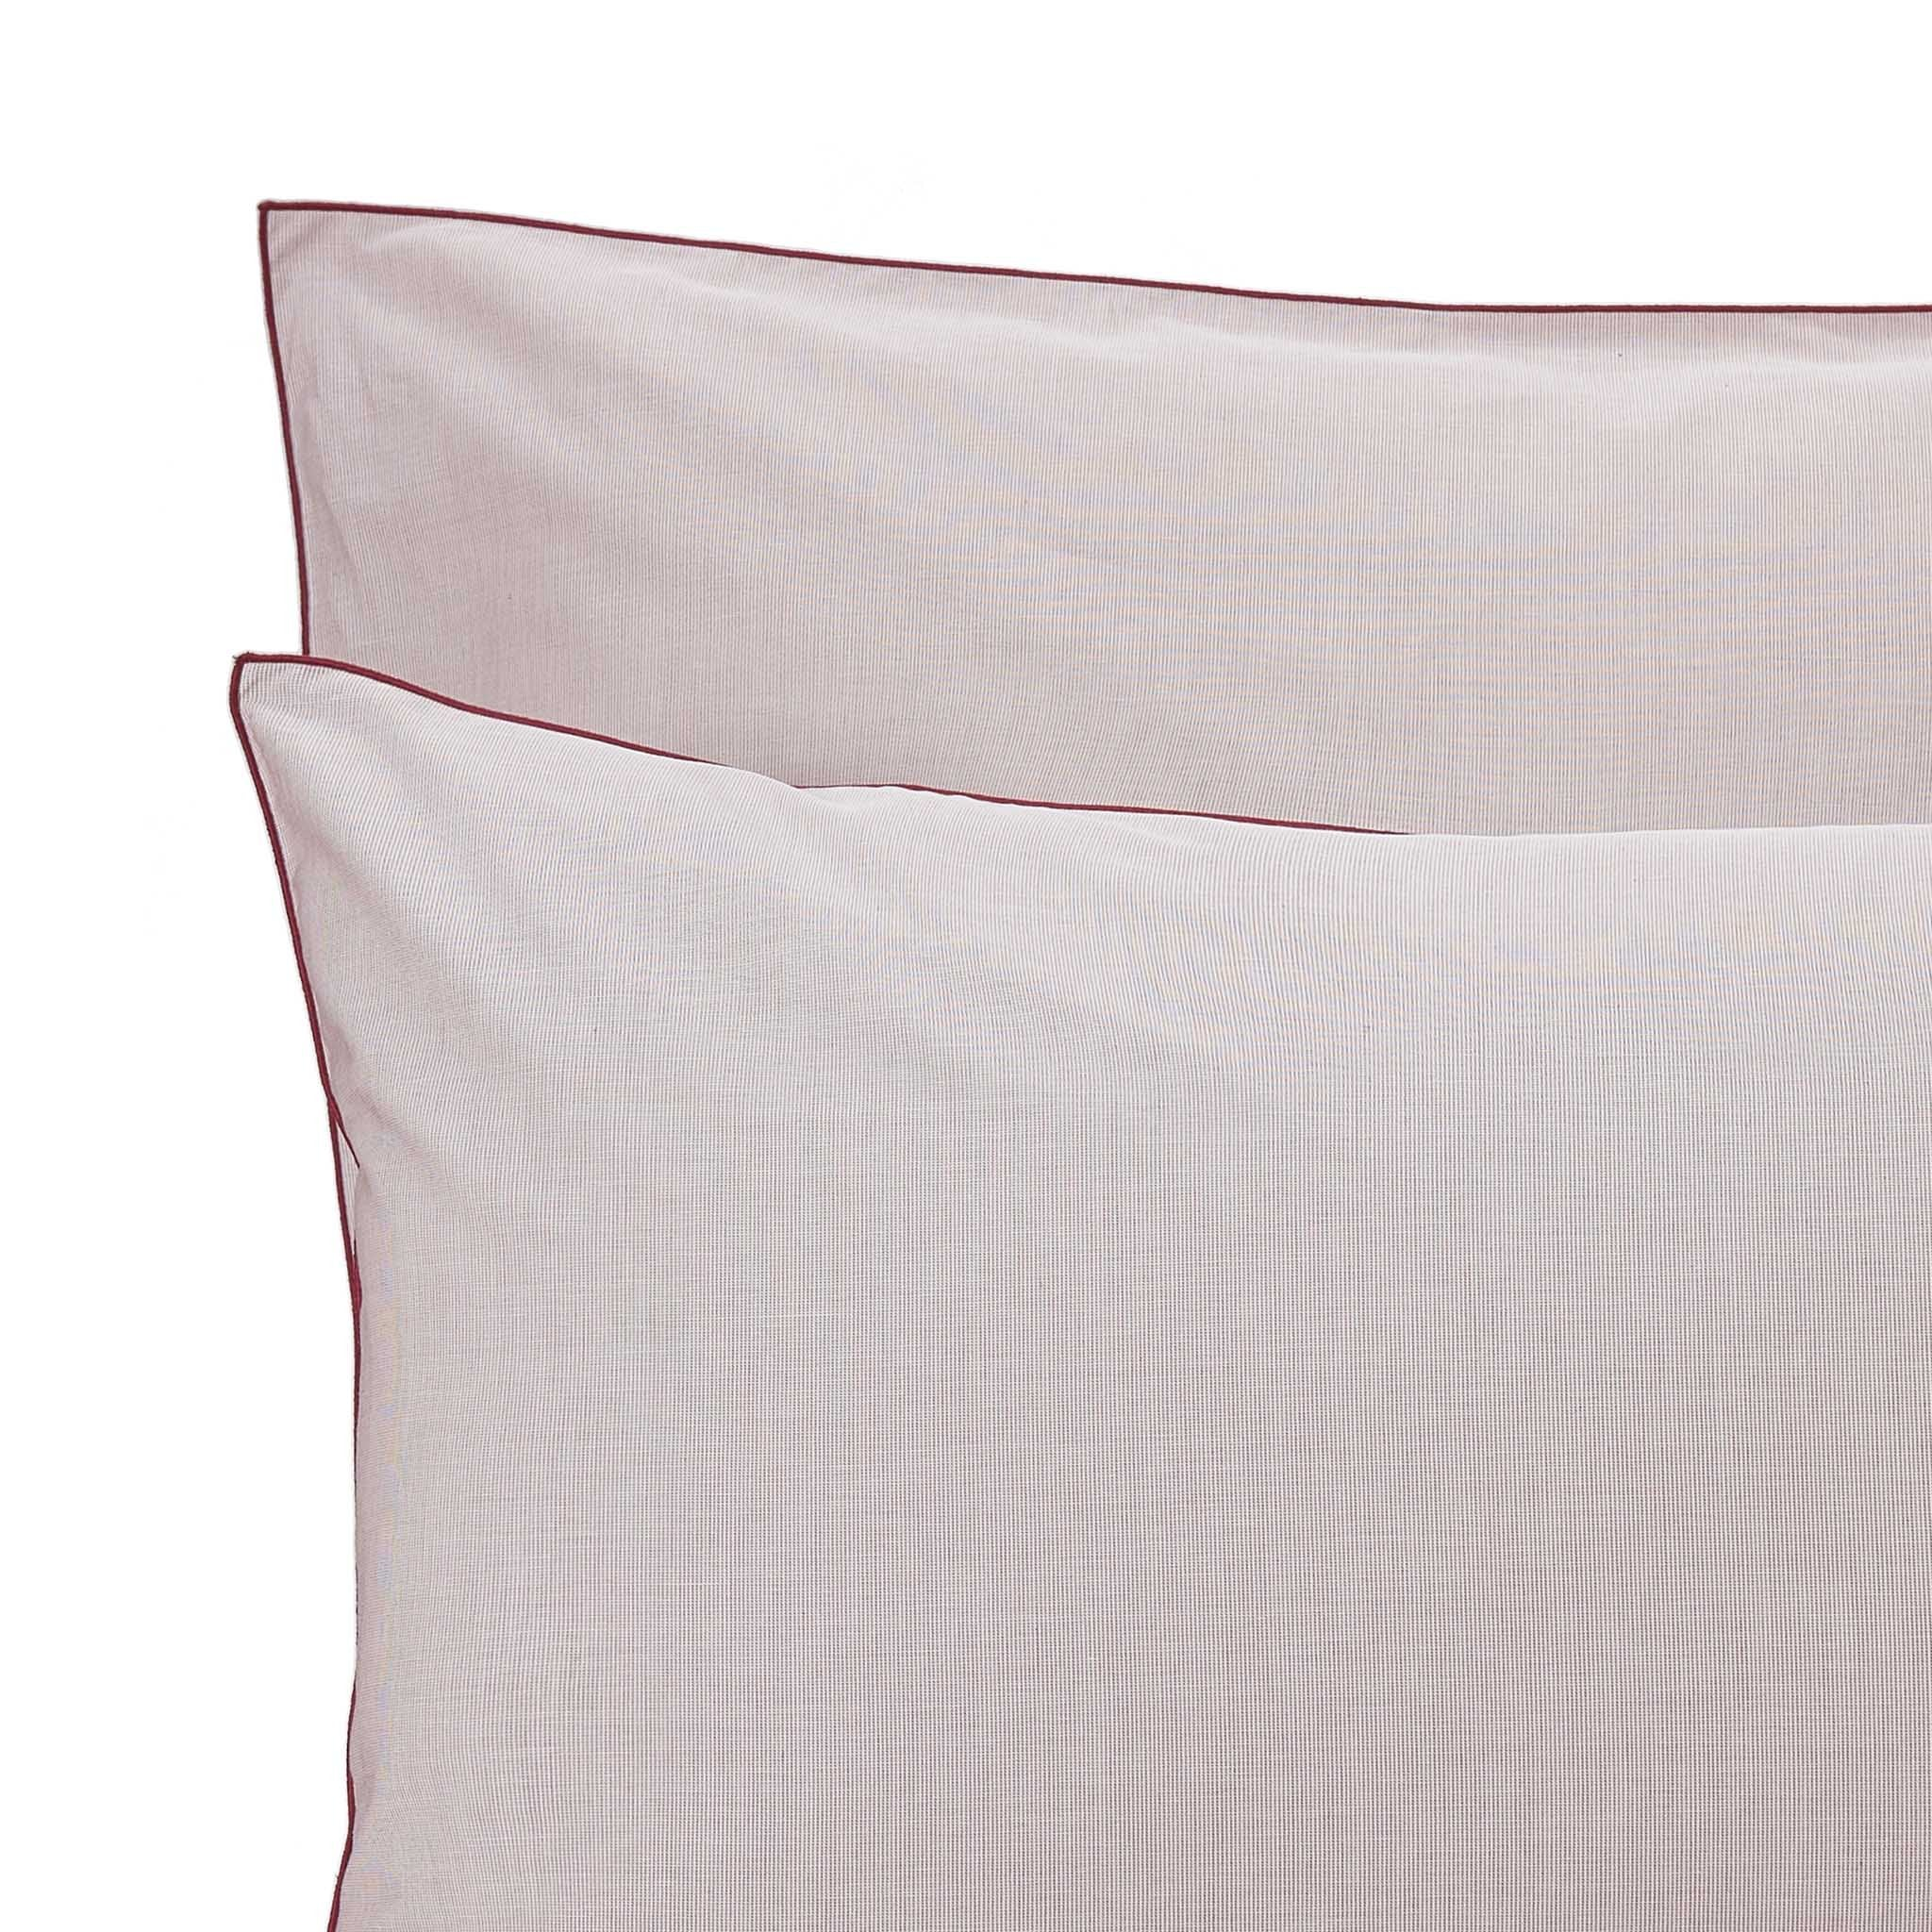 Sousa Bed Linen in dark red & white | Home & Living inspiration | URBANARA